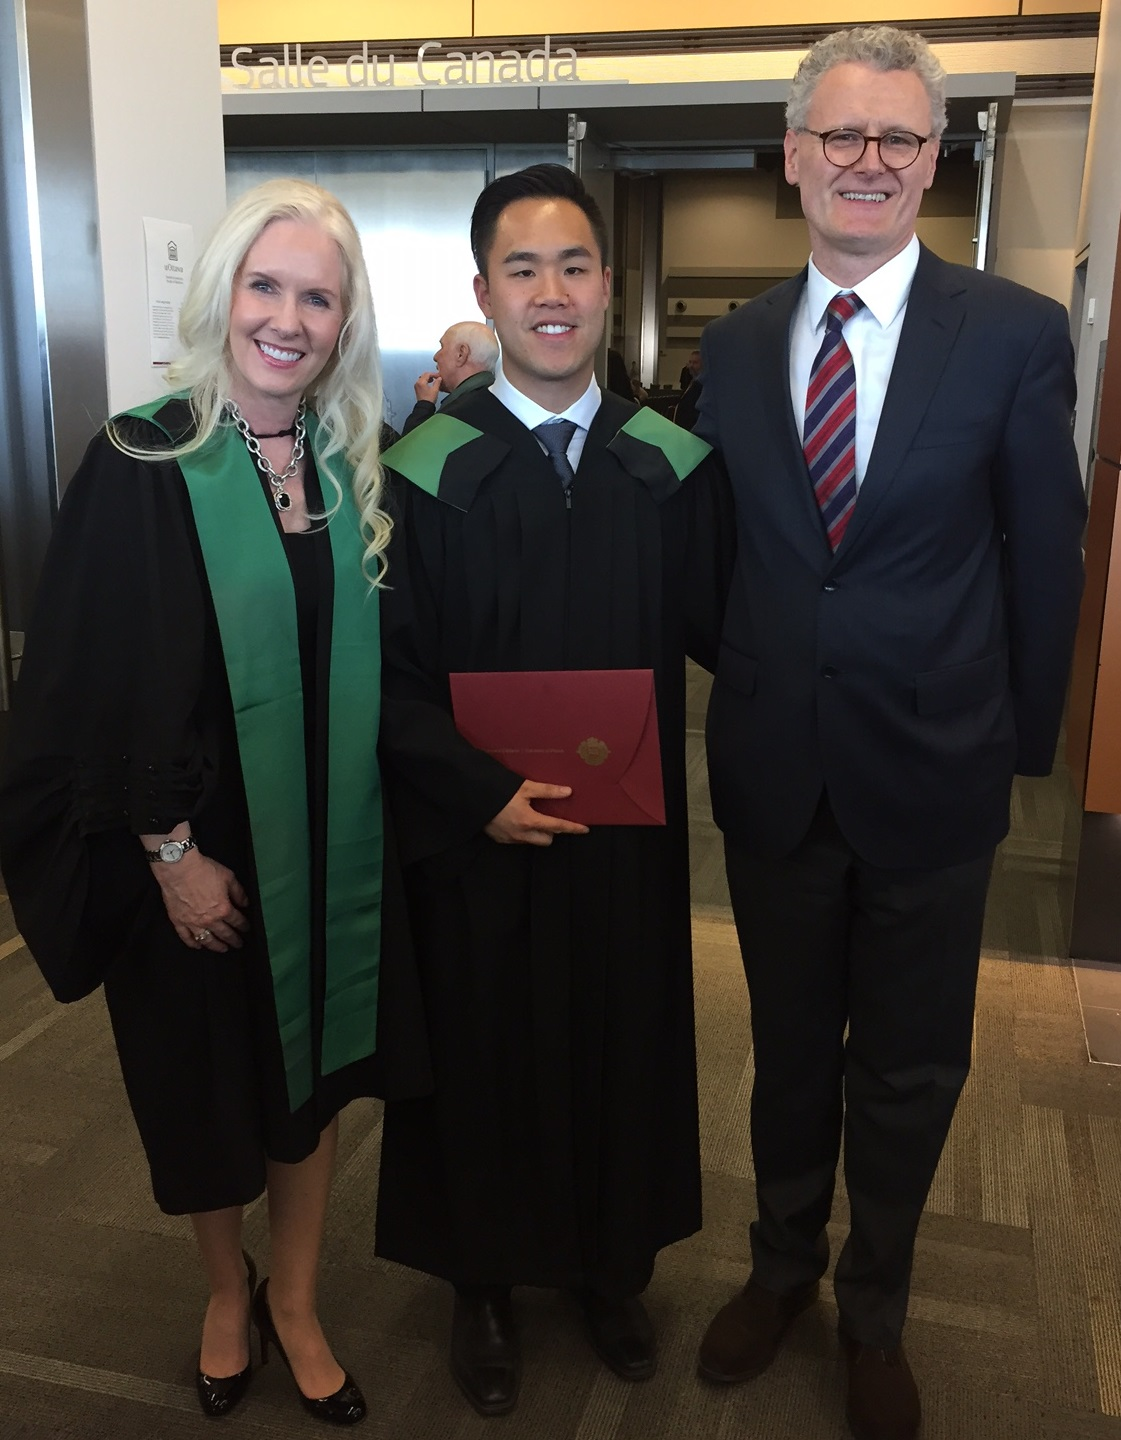 Dr. Dorgie Colin Suen and Dr. Schlossmacher